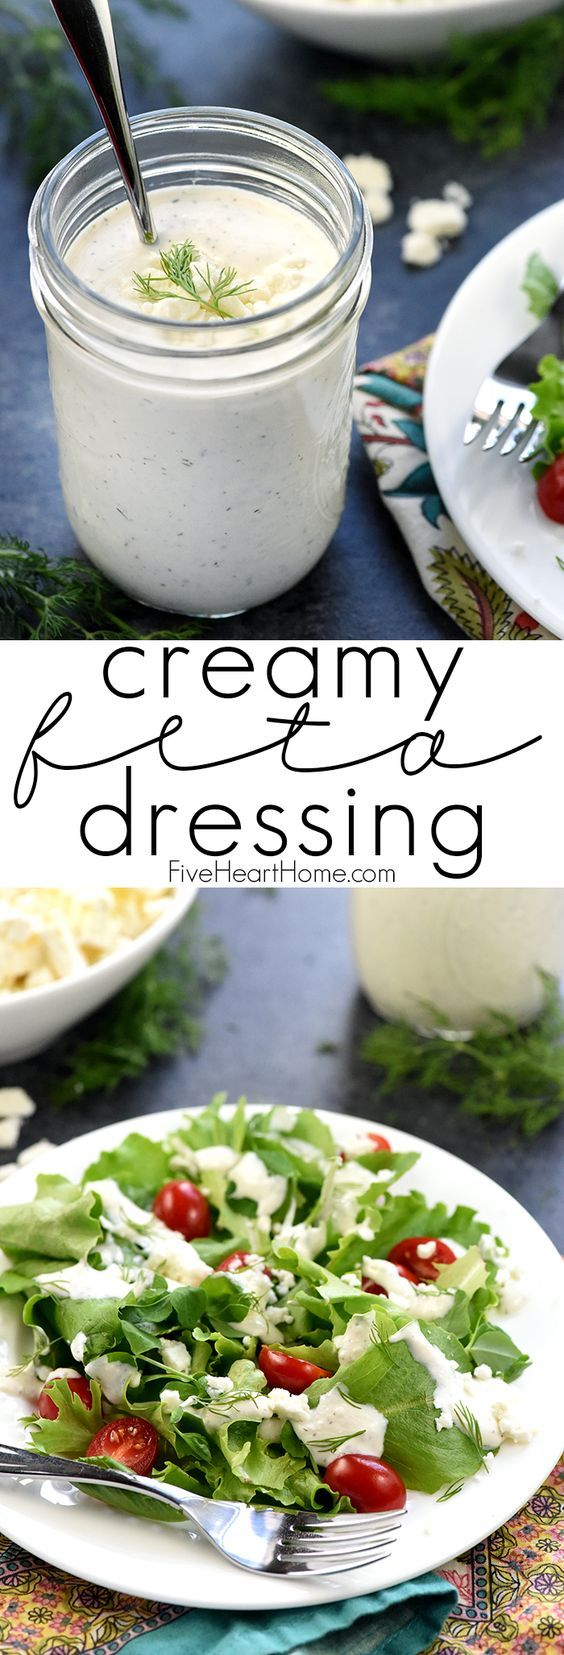 Creamy Feta Dressing ~ with Greek yogurt, crumbled feta cheese, and fresh dill, this homemade dressing is a delicious complement to salads, tomatoes, cucumbers, and more! | FiveHeartHome.com